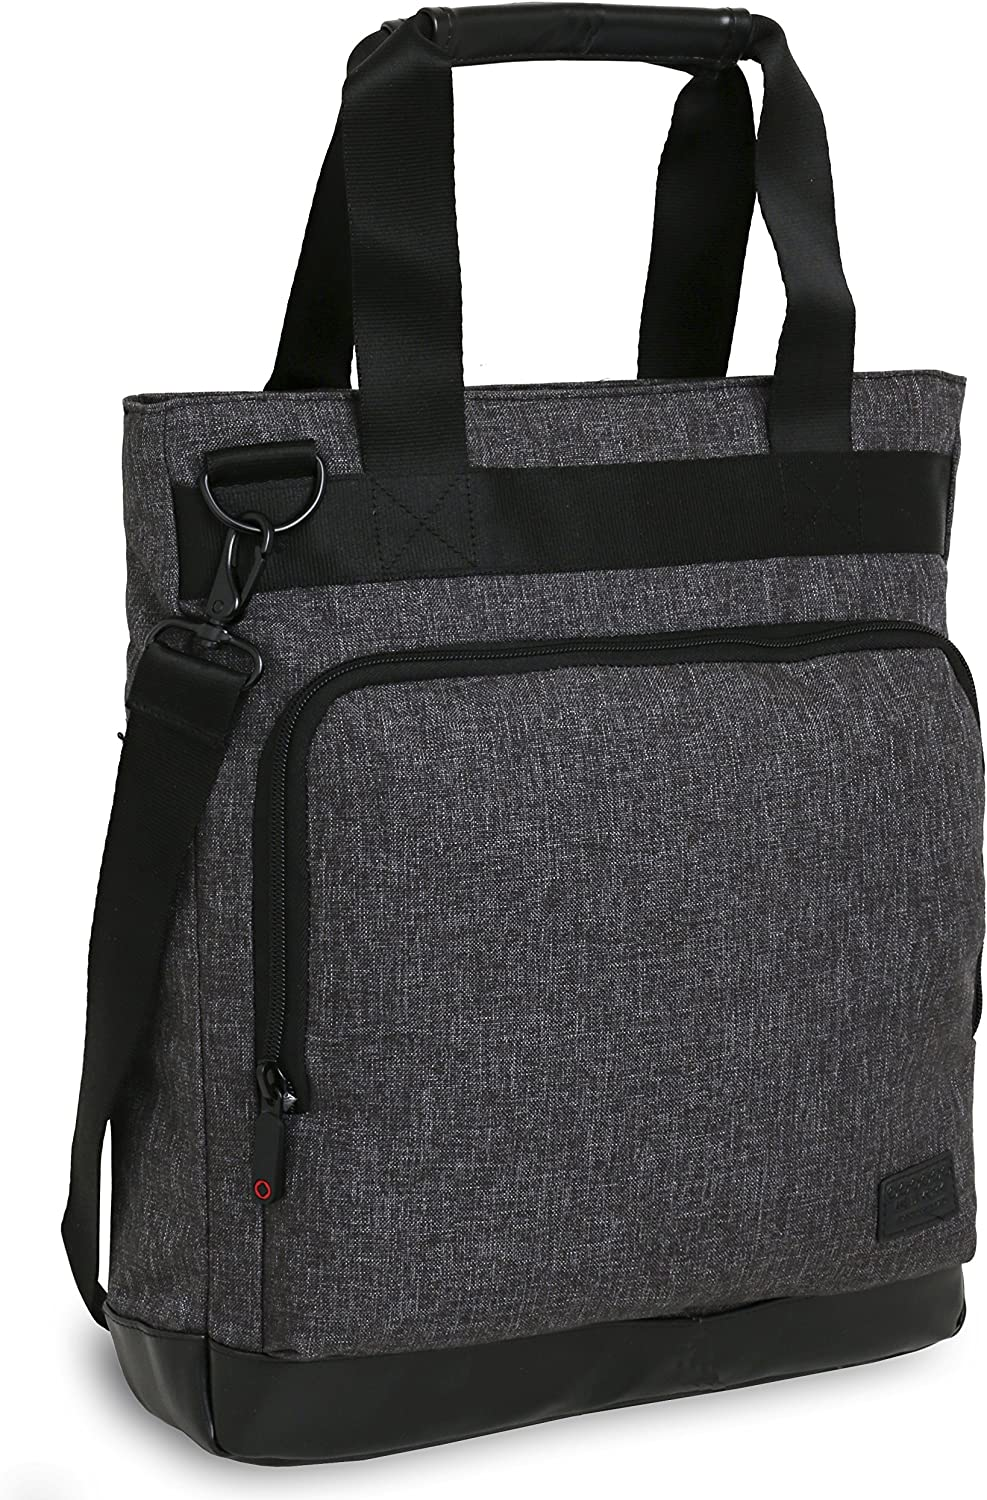 J World New York Nell Messenger Bag